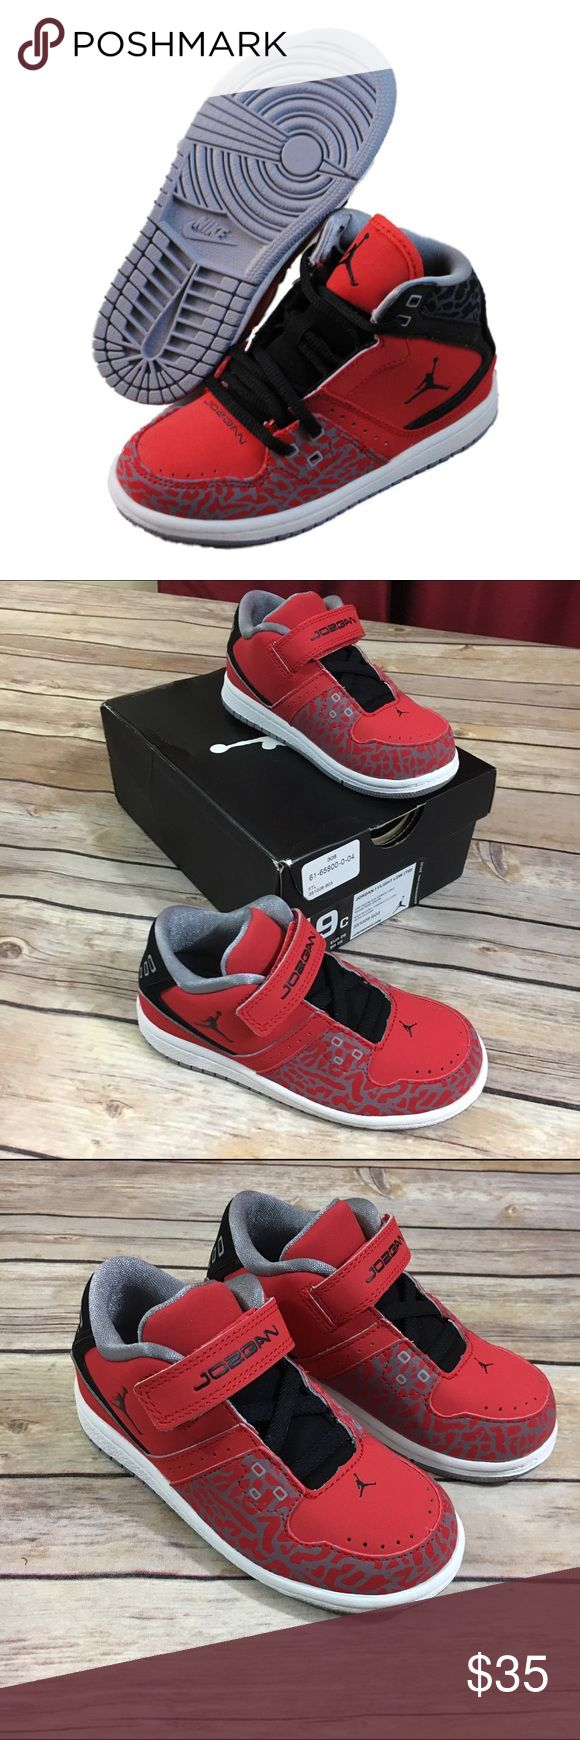 NEW Nike Air Jordan 1 Flight Low Toddler 9 Fire NEW Nike Air Jordan 1 Flight Low Toddler 9 Fire Red   Beautiful new Air Jordan 1 Flight Low shoes.  Size is toddler 9.  Colors are fire red, black and cement grey.  #new #airjordan #jordans #jordan #nike #flightlow #1flightlow #firered #black #cementgrey #coolkicks #shoes #kicks Jordan Shoes Sneakers